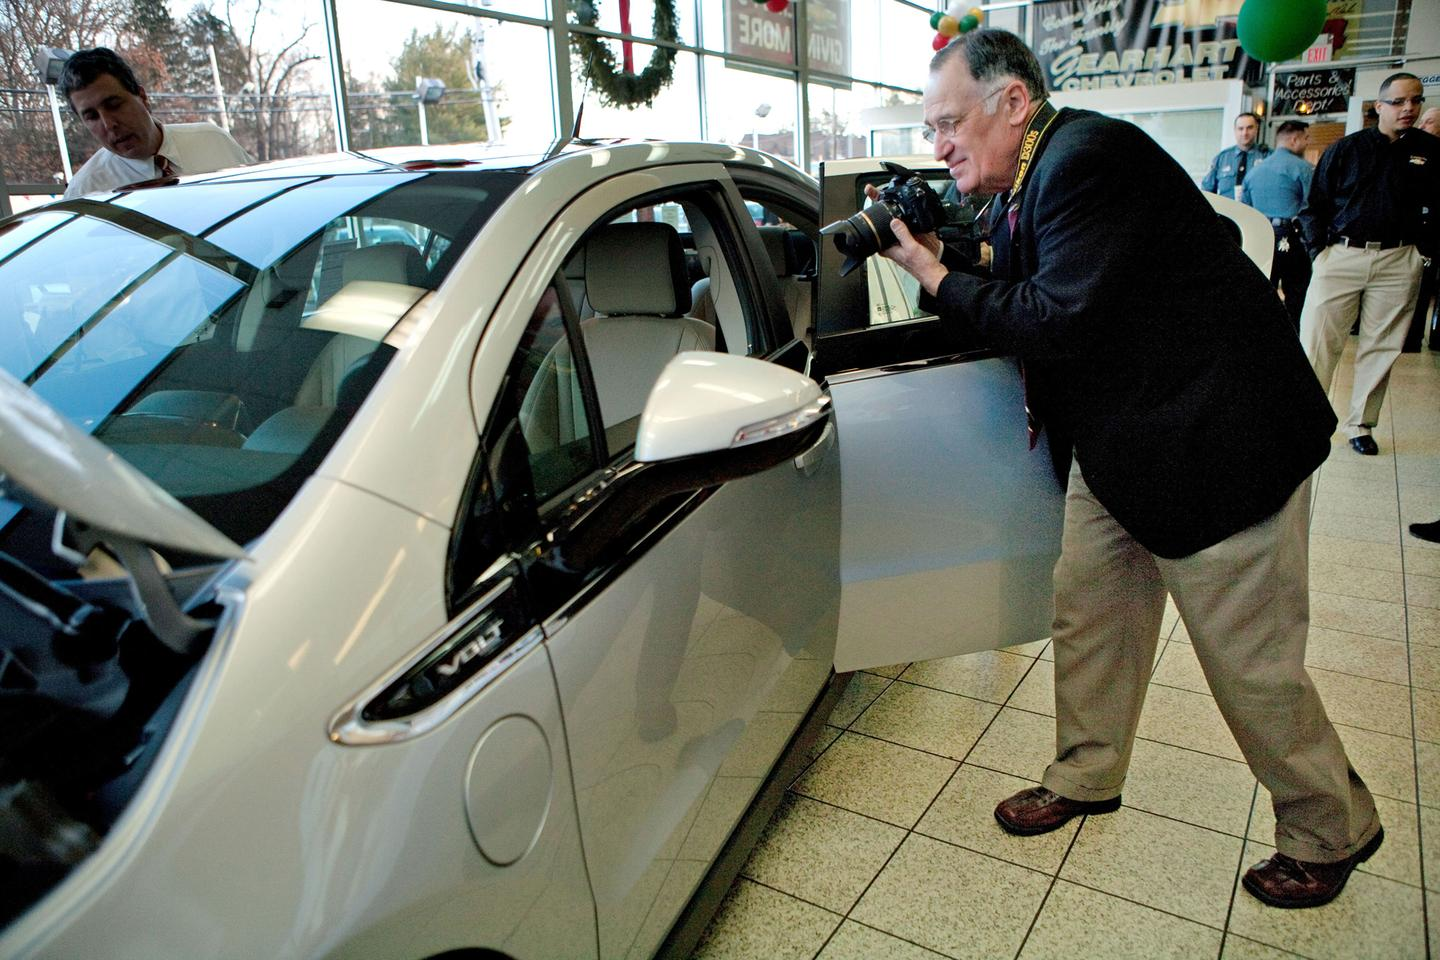 Jeffrey Kaffee takes pictures of his new Chevrolet Volt - presumably for insurance purposes or something (Image: Emile Wamsteker for Chevrolet)